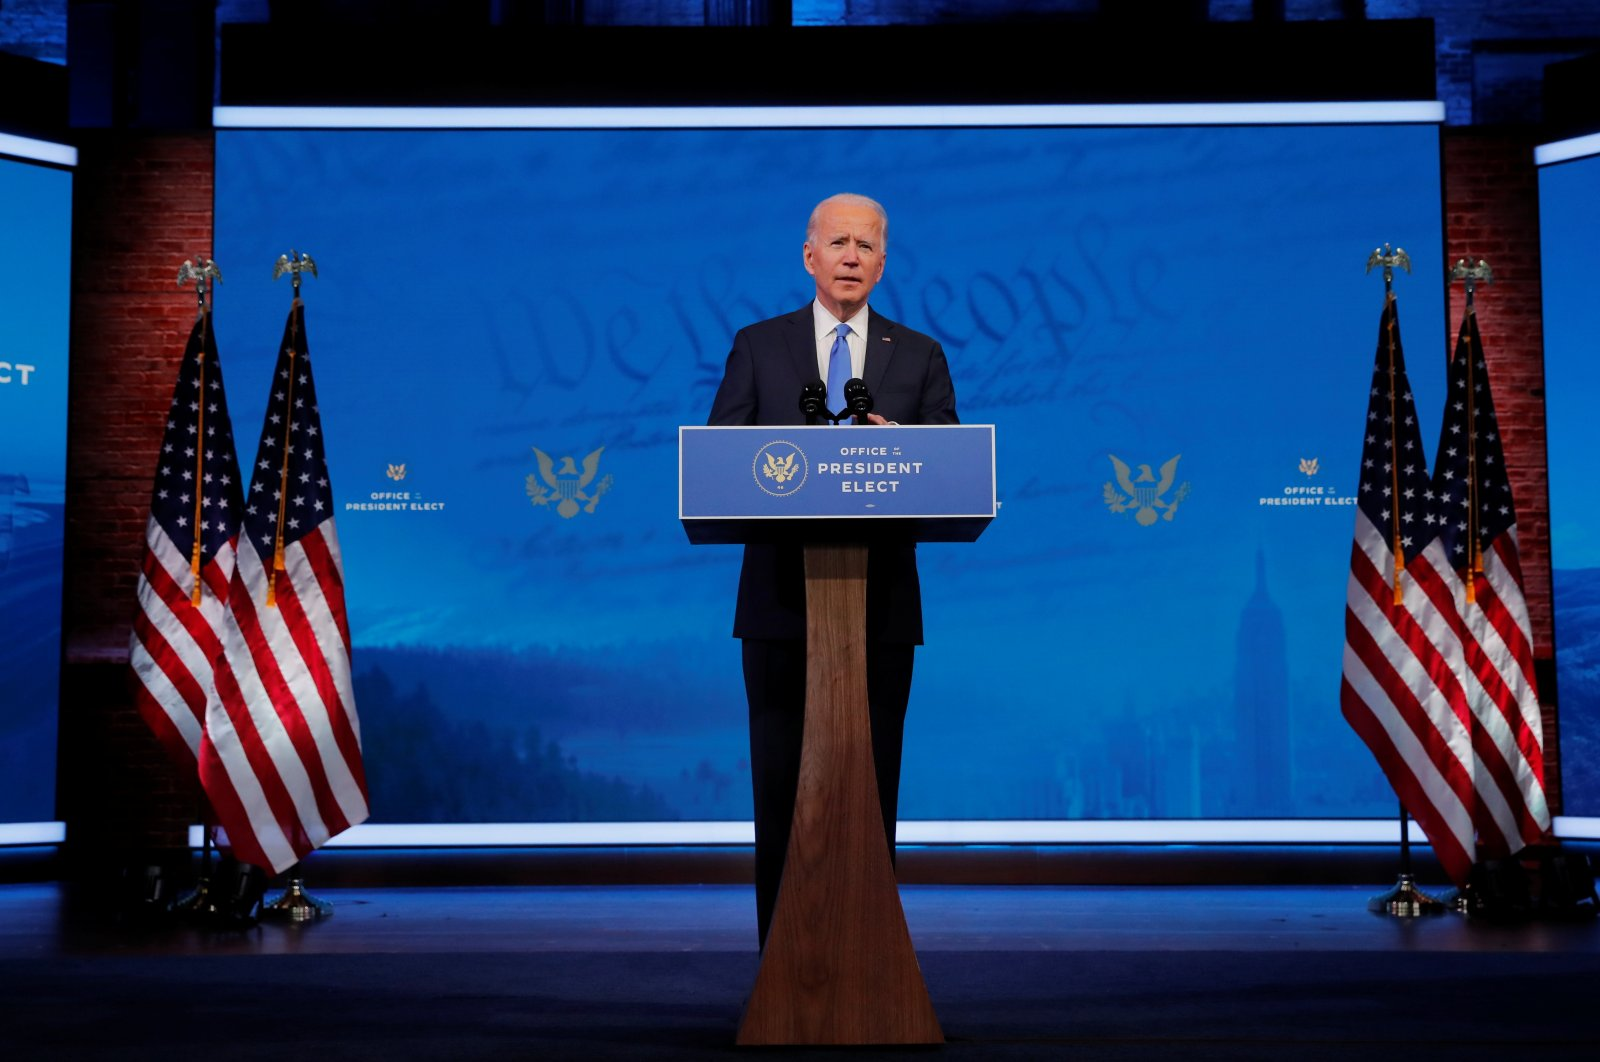 U.S. President-elect Joe Biden delivers a speech after the U.S. Electoral College formally confirmed his victory in the presidential election, in Wilmington, Delaware, U.S., Dec. 14, 2020. (Reuters Photo)